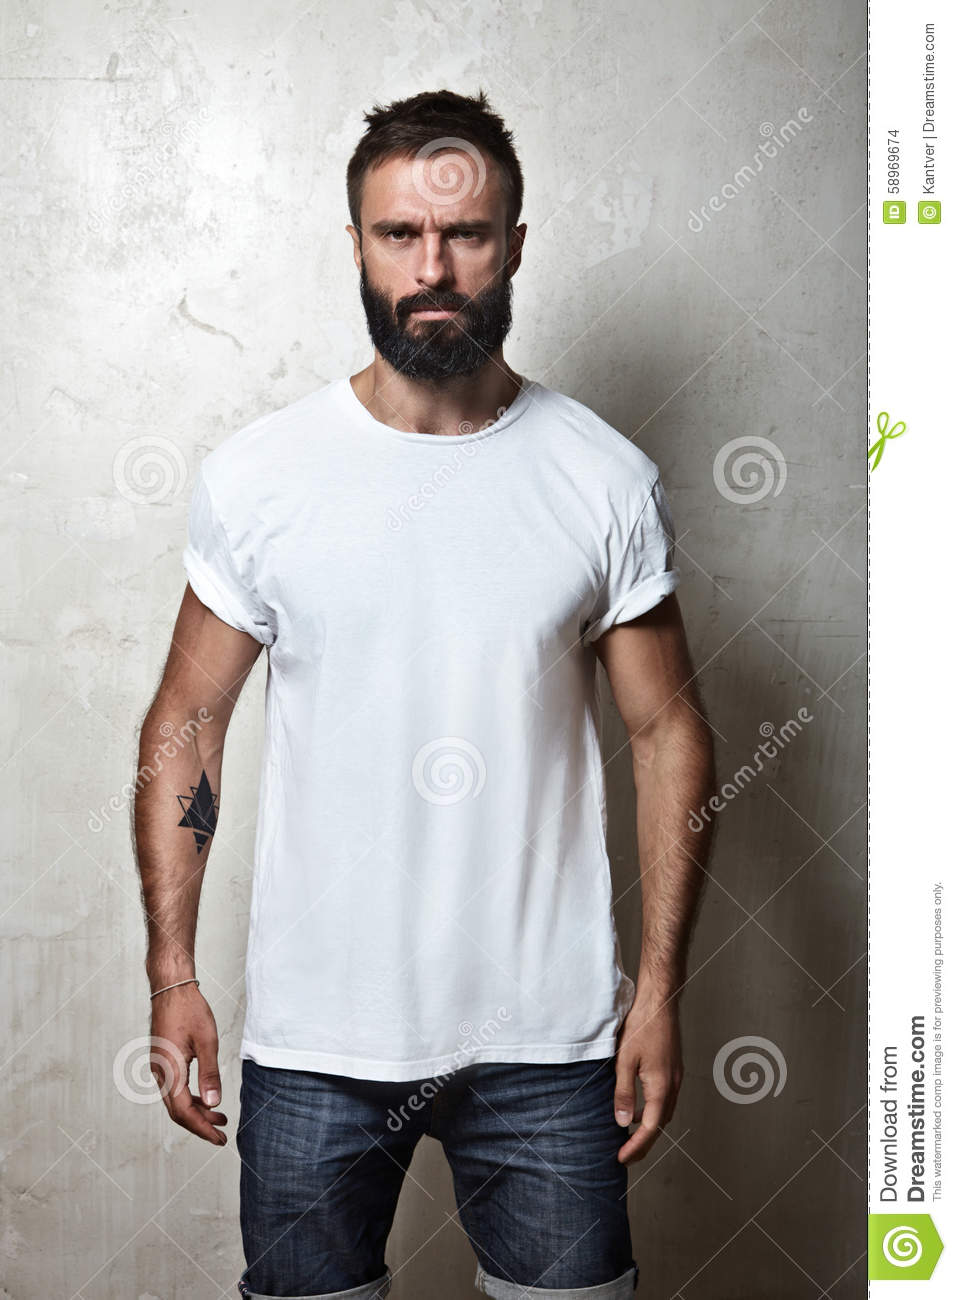 Bearded Guy Wearing White Blank T-shirt Stock Photo - Image: 58969674